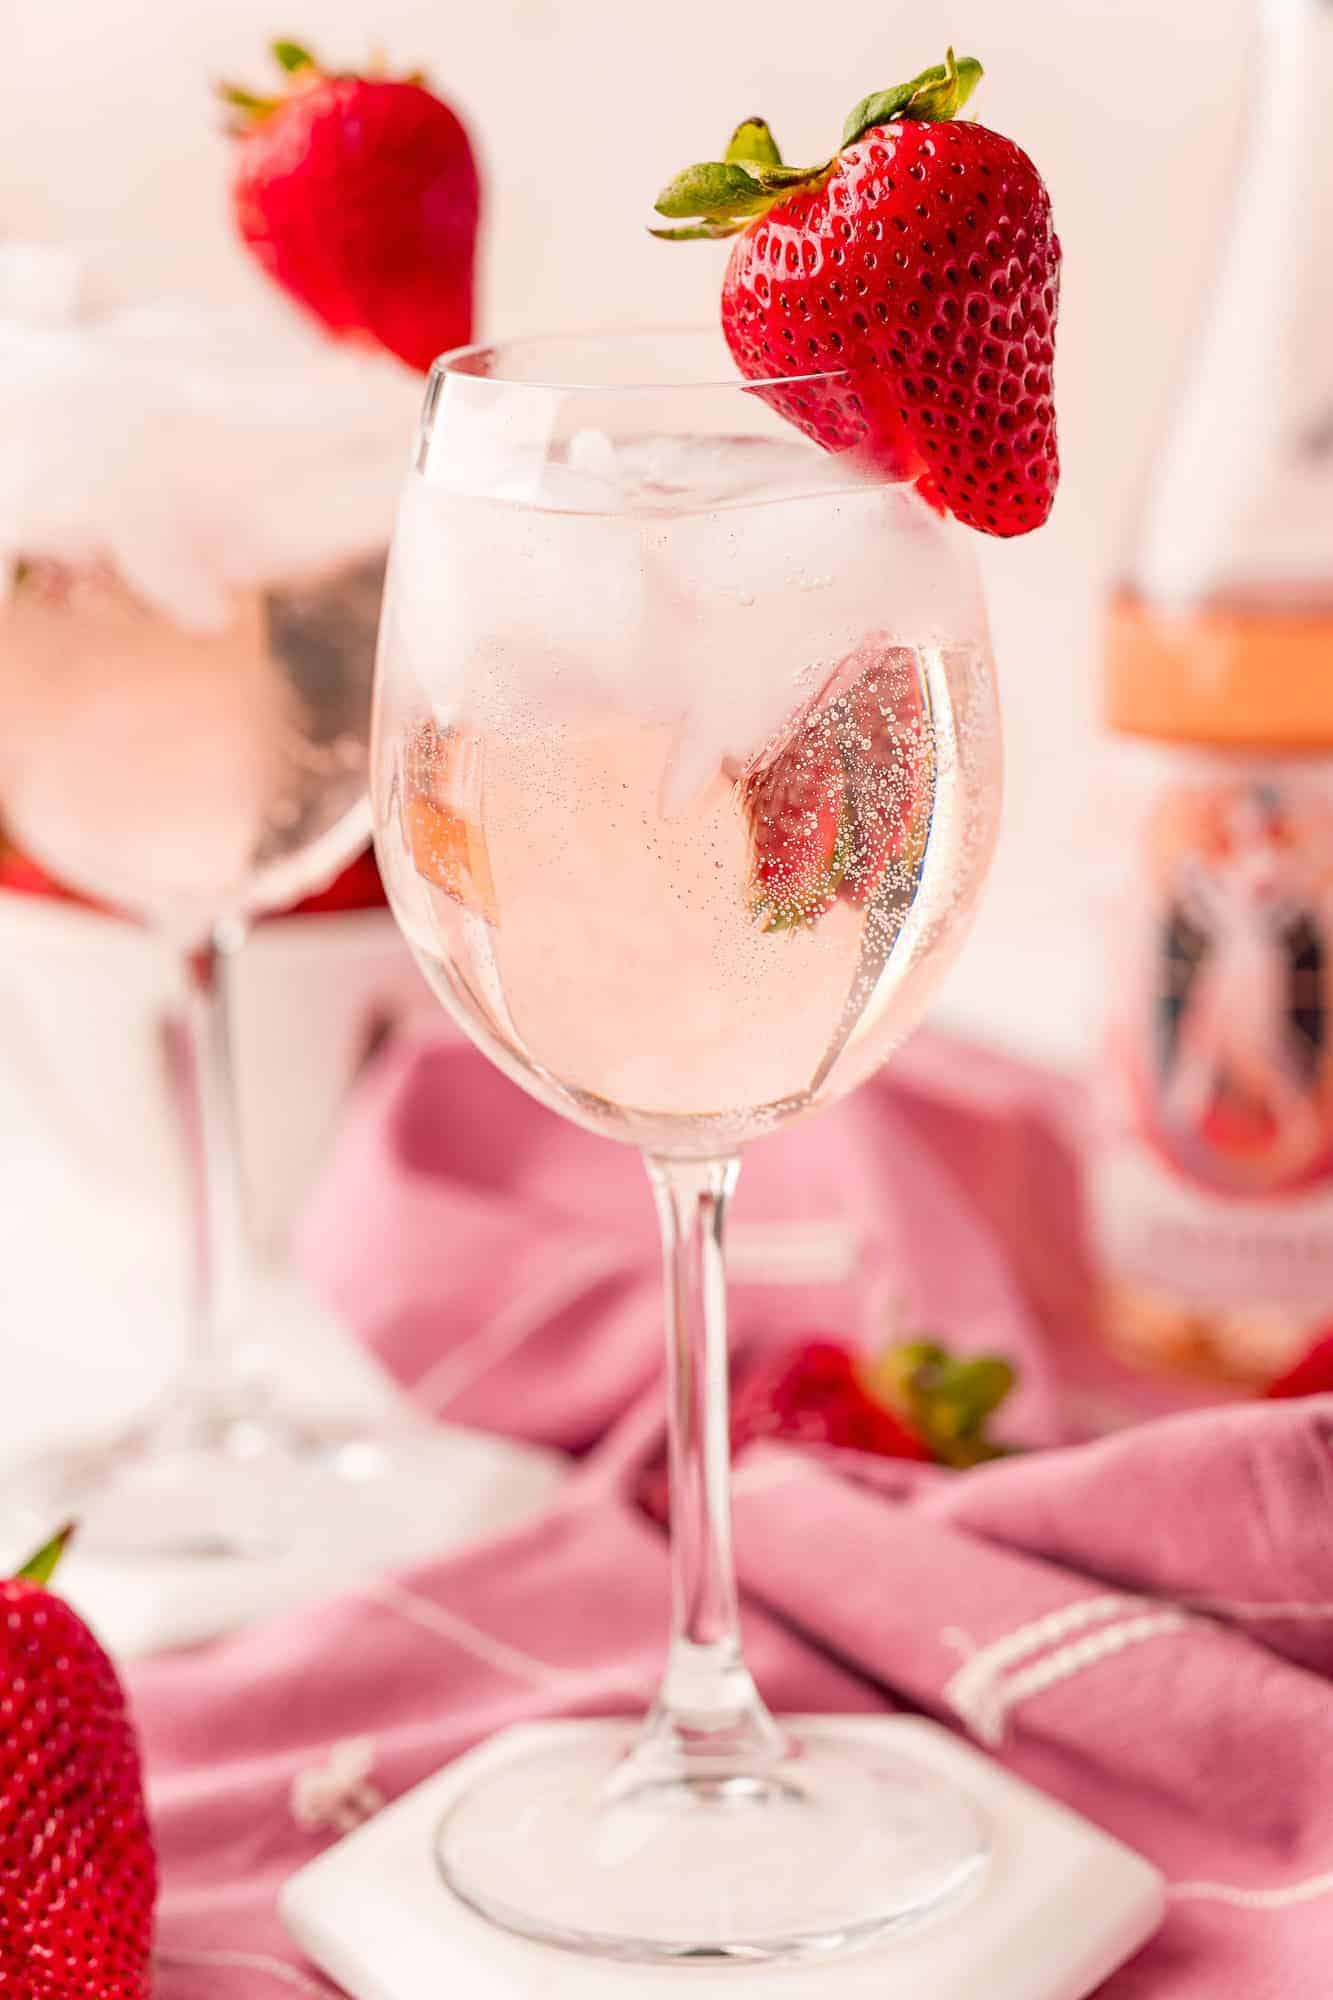 Close up of a wine glass with a rose spritzer, ice, and strawberry garnish.